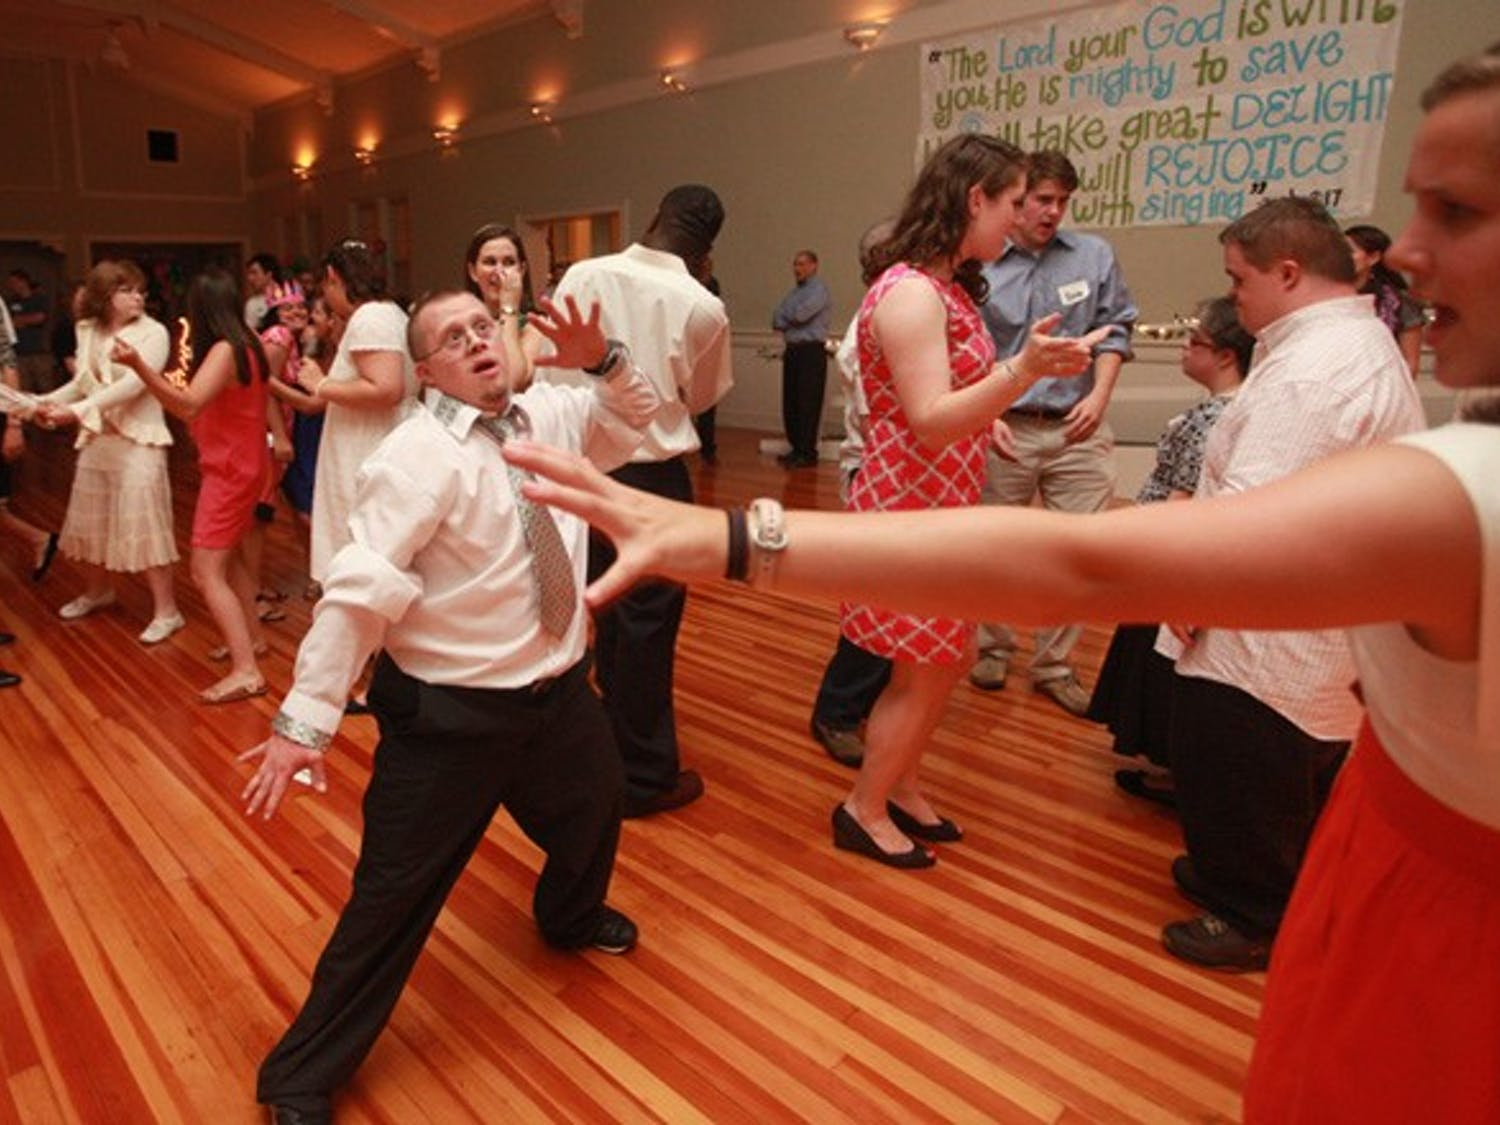 Matthew LaPerre, 21, of Durham, dances with his friend Sally Turner.